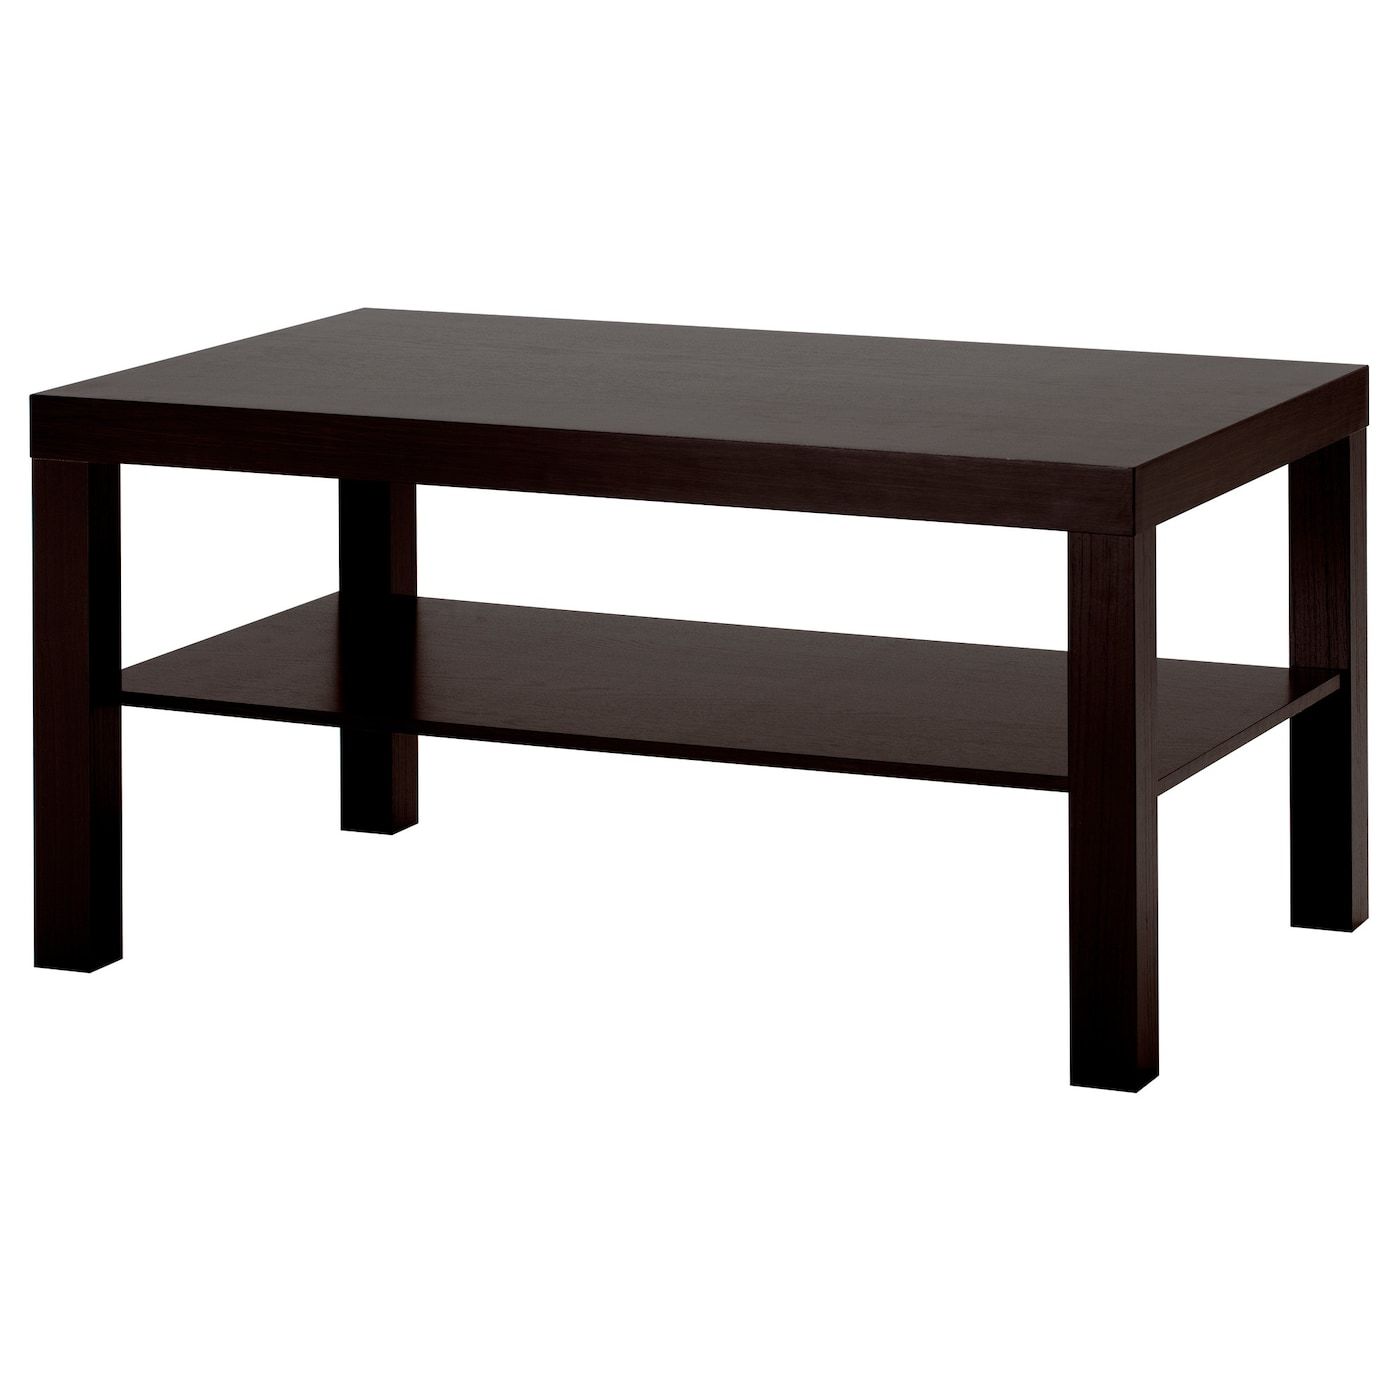 Lack coffee table black brown 90x55 cm ikea for Table 4 en 1 intersport